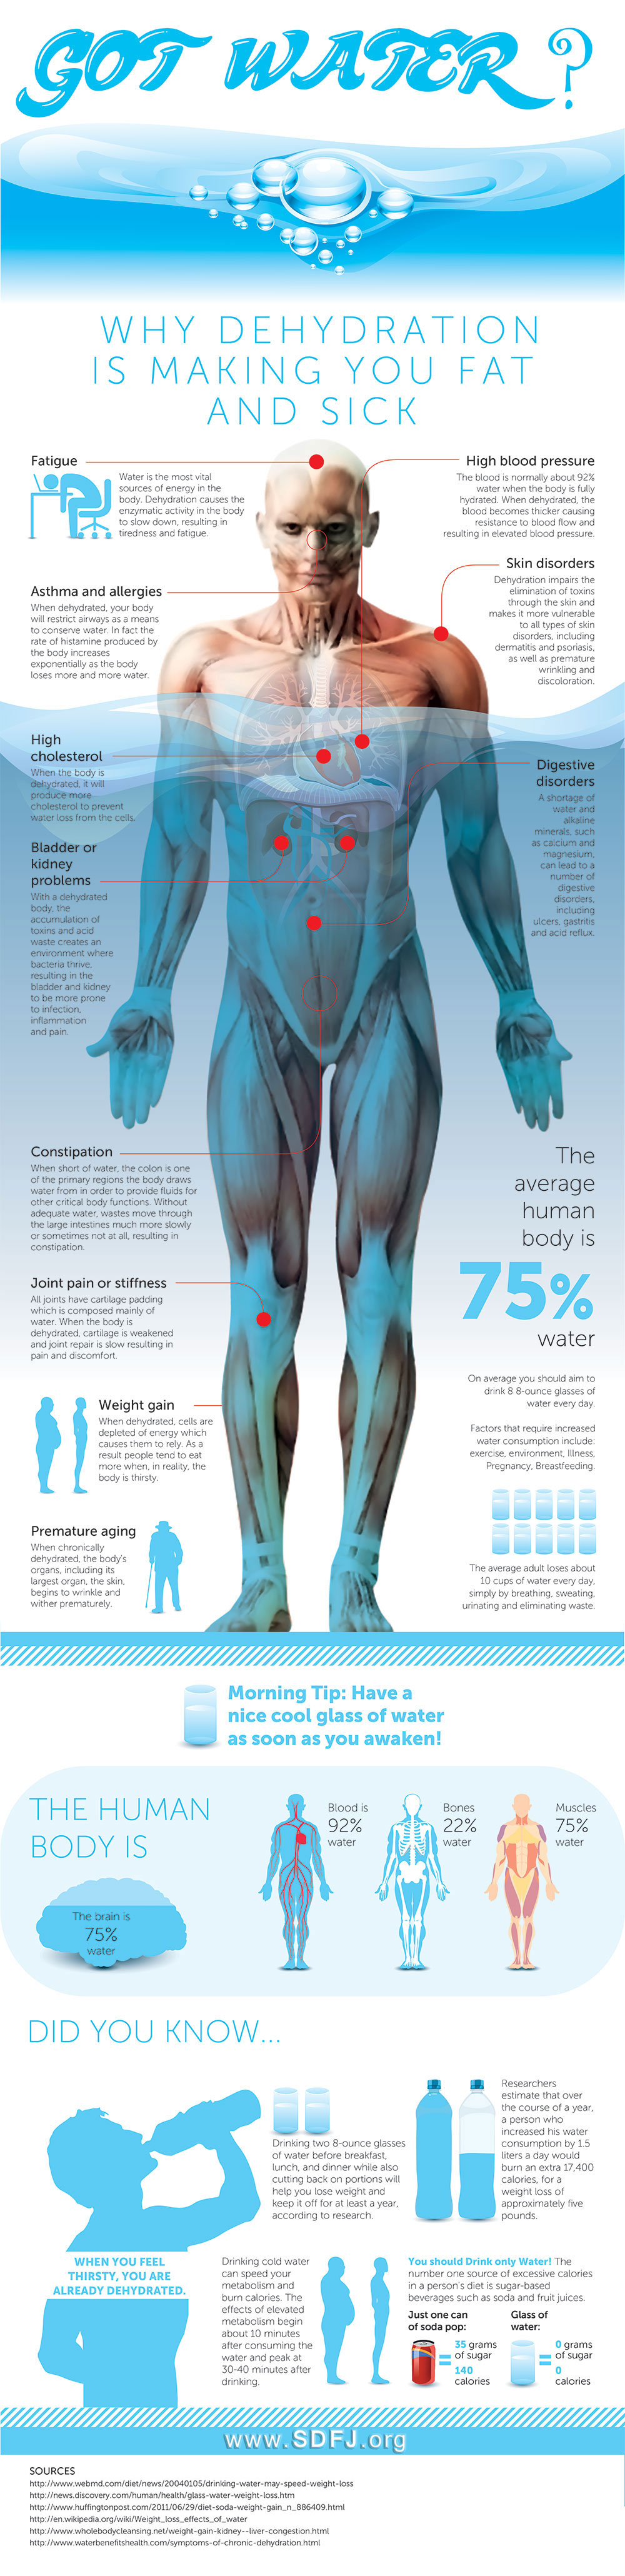 water dehydration infographic